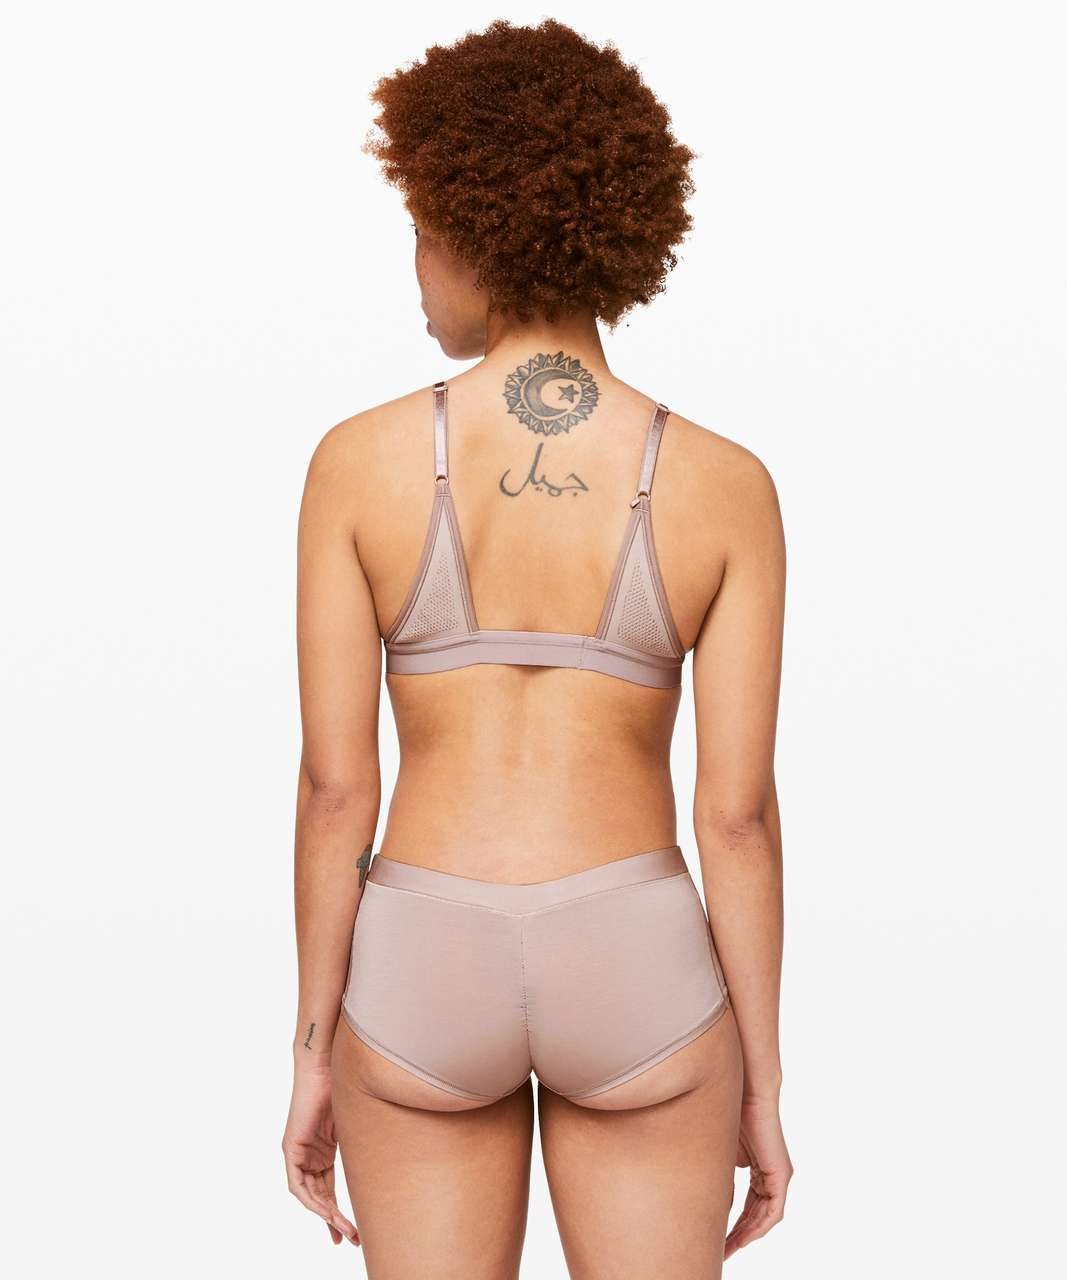 Lululemon Uncover Me Bralette - Muse / Muse